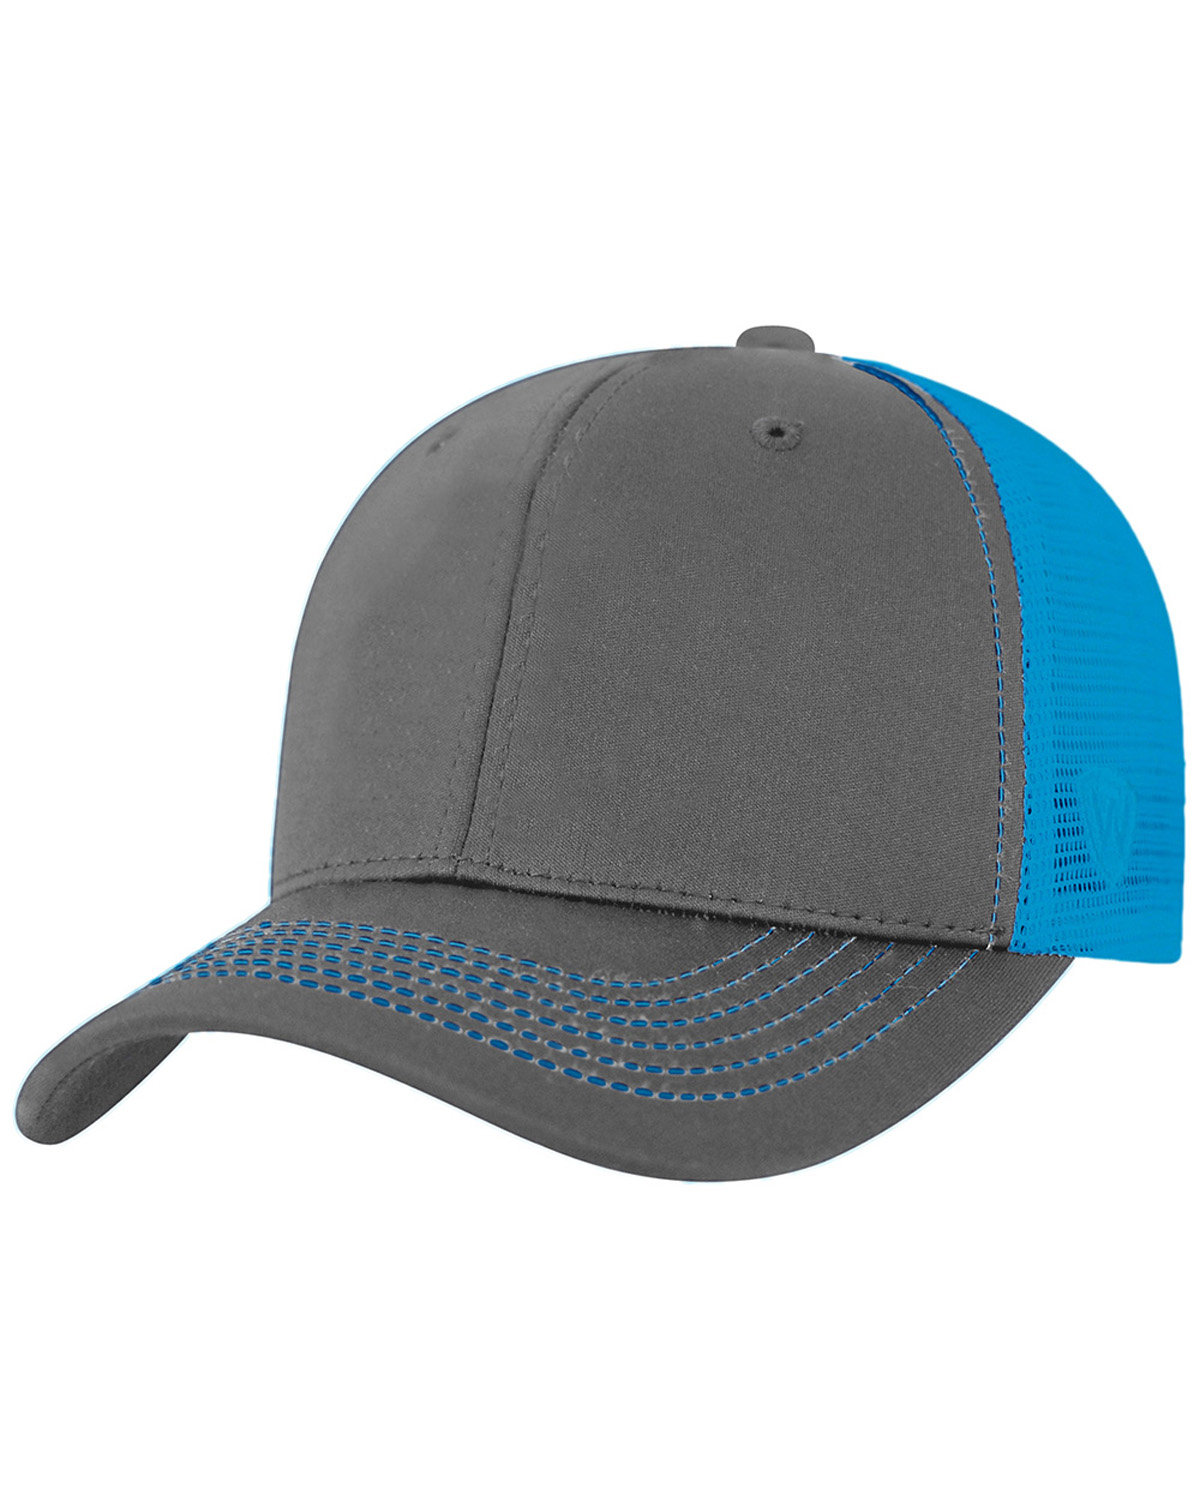 Top Of The World Adult Ranger Cap CHRCL/ NEON BLUE